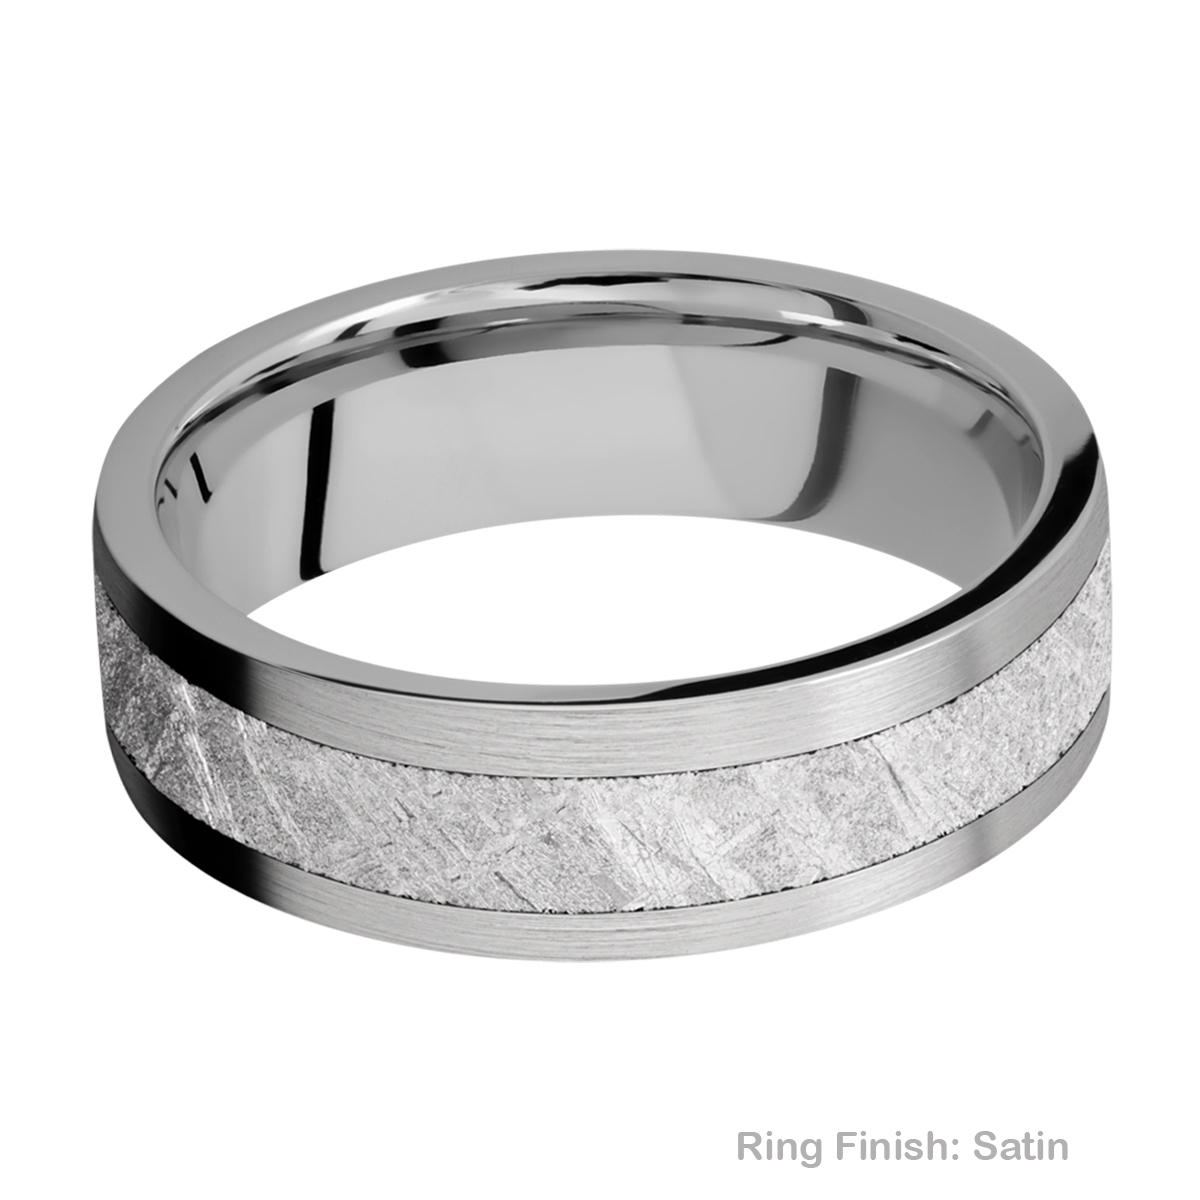 Lashbrook 7F14/METEORITE Titanium Wedding Ring or Band Alternative View 5